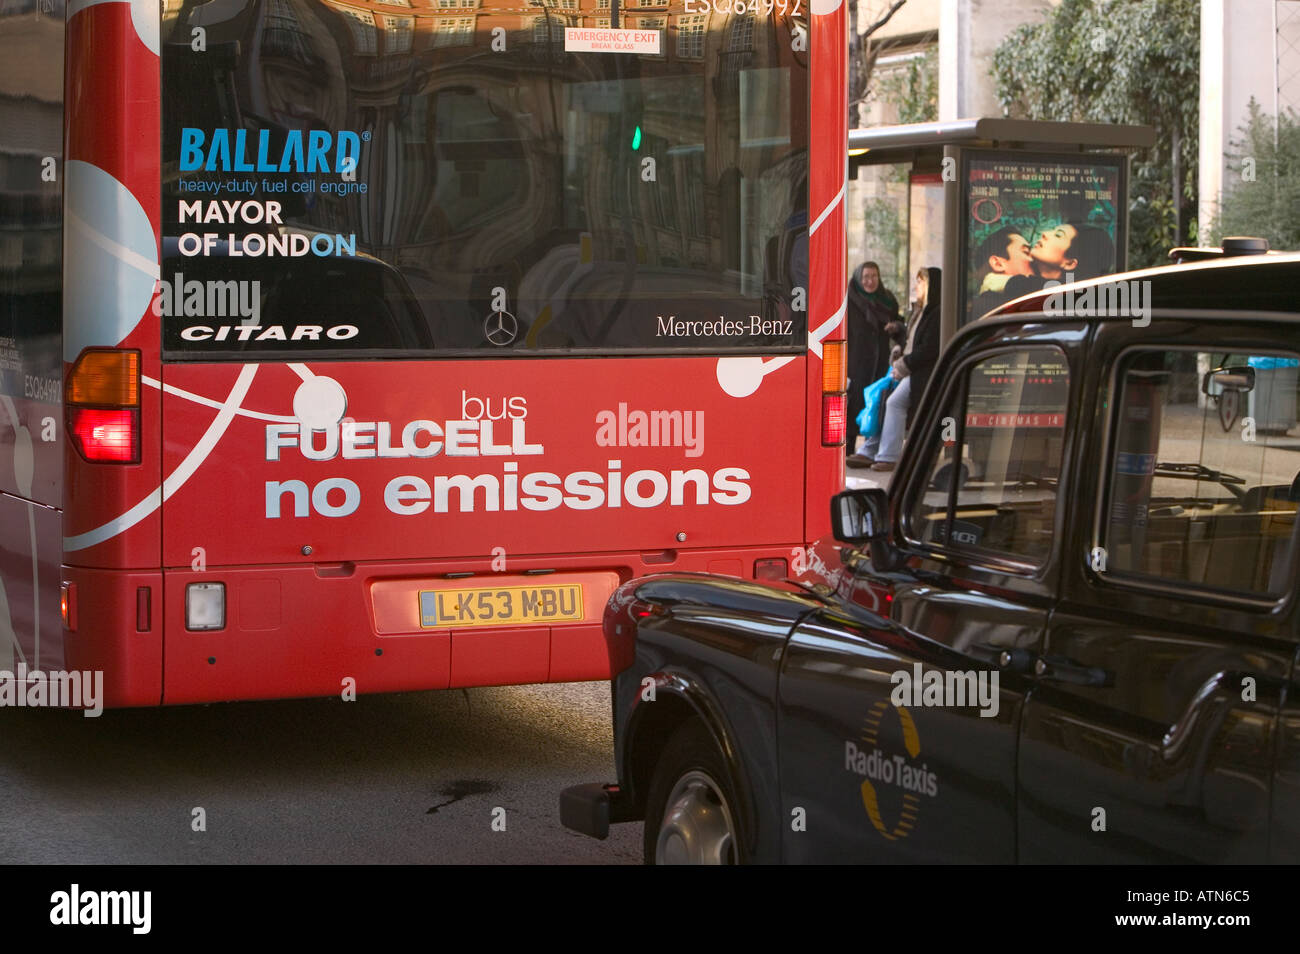 a zero emmission bus in London clean energy fuel cell bus Stock Photo